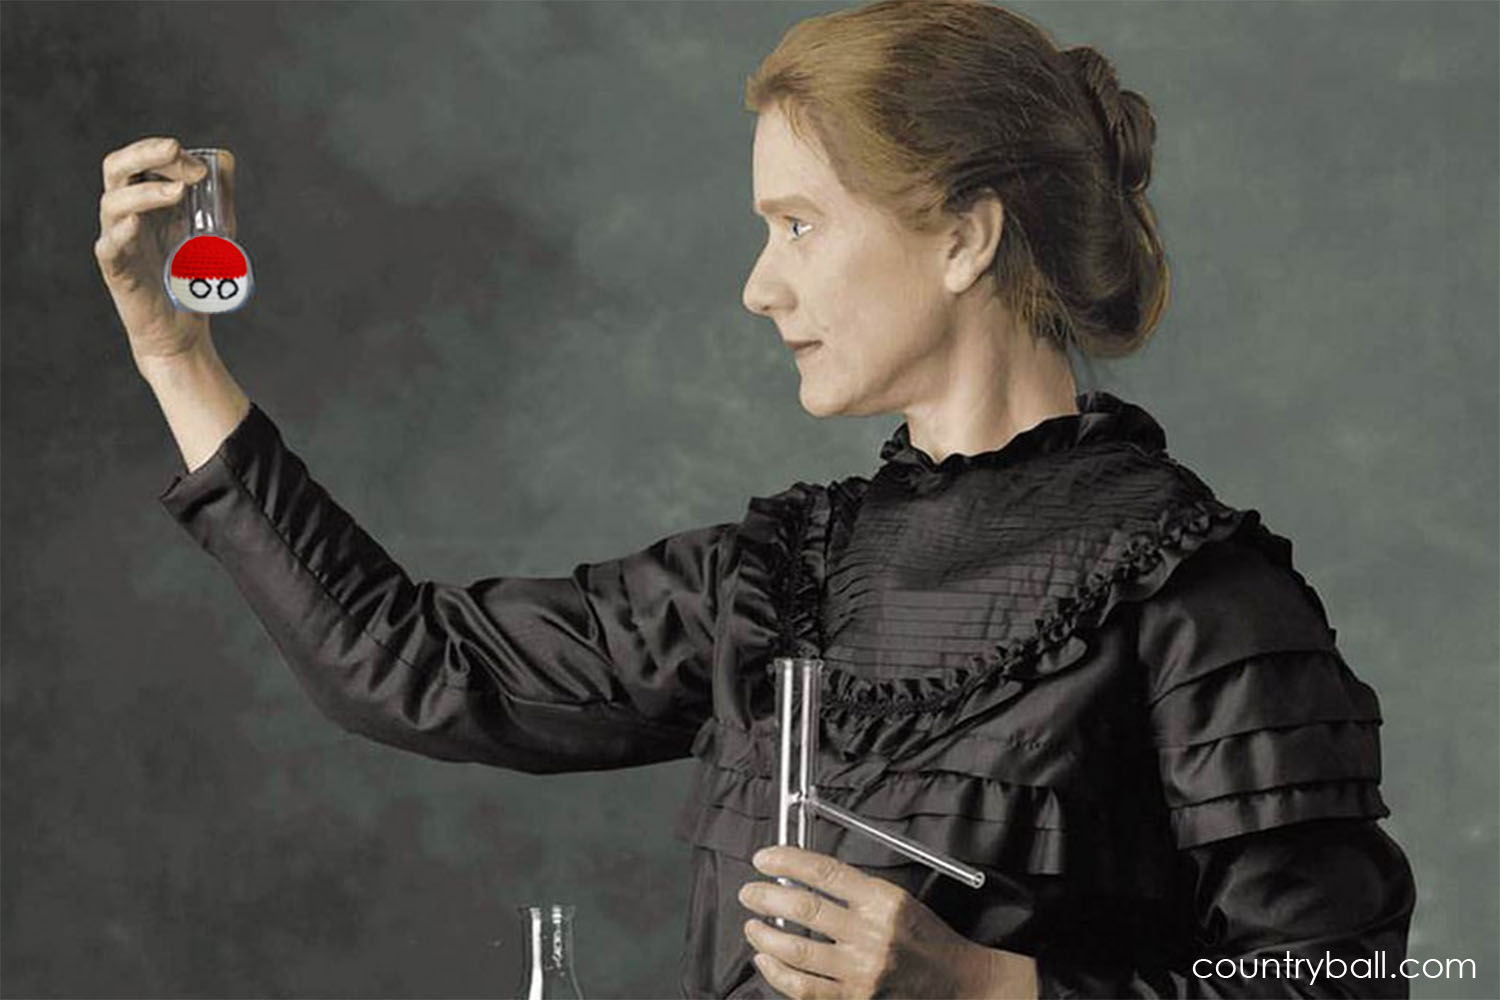 Marie Curie experimenting with a Polandball